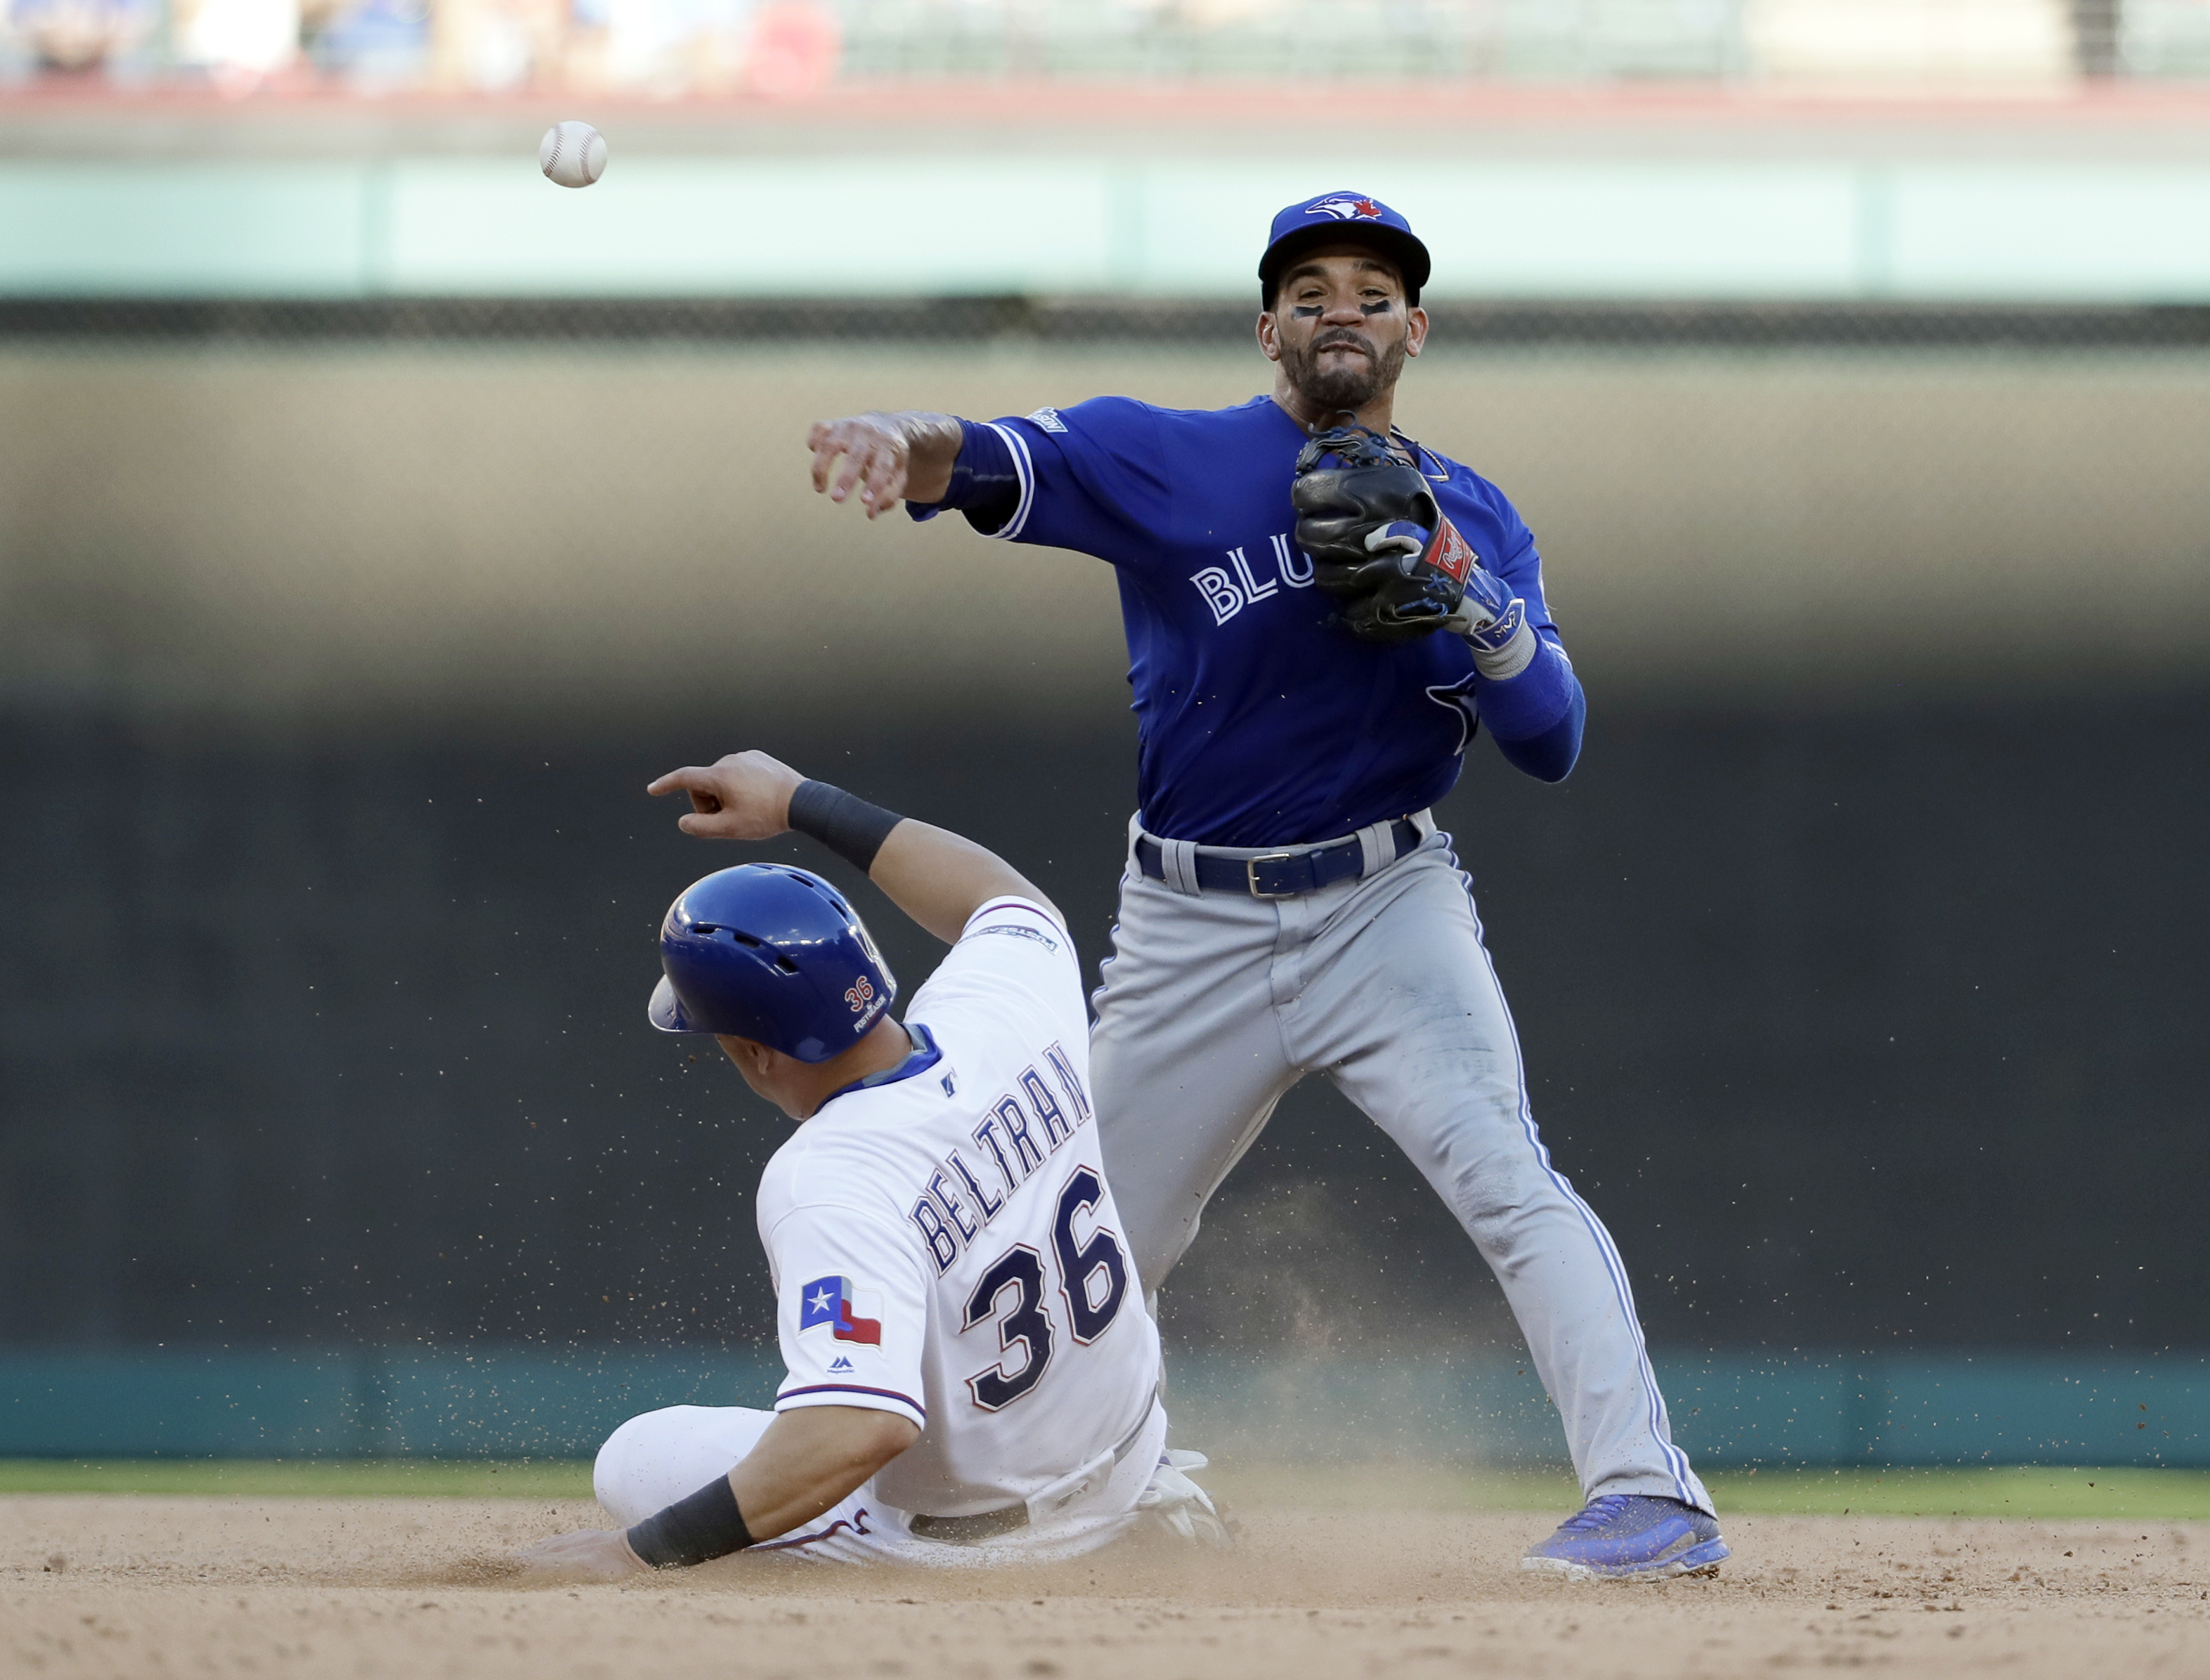 Toronto Blue Jays second baseman Devon Travis throws to first for the double play after forcing out Texas Rangers' Carlos Beltran during the seventh inning of Game 1 baseball's American League Division Series, Thursday, Oct. 6, 2016, in Arlington, Texas.